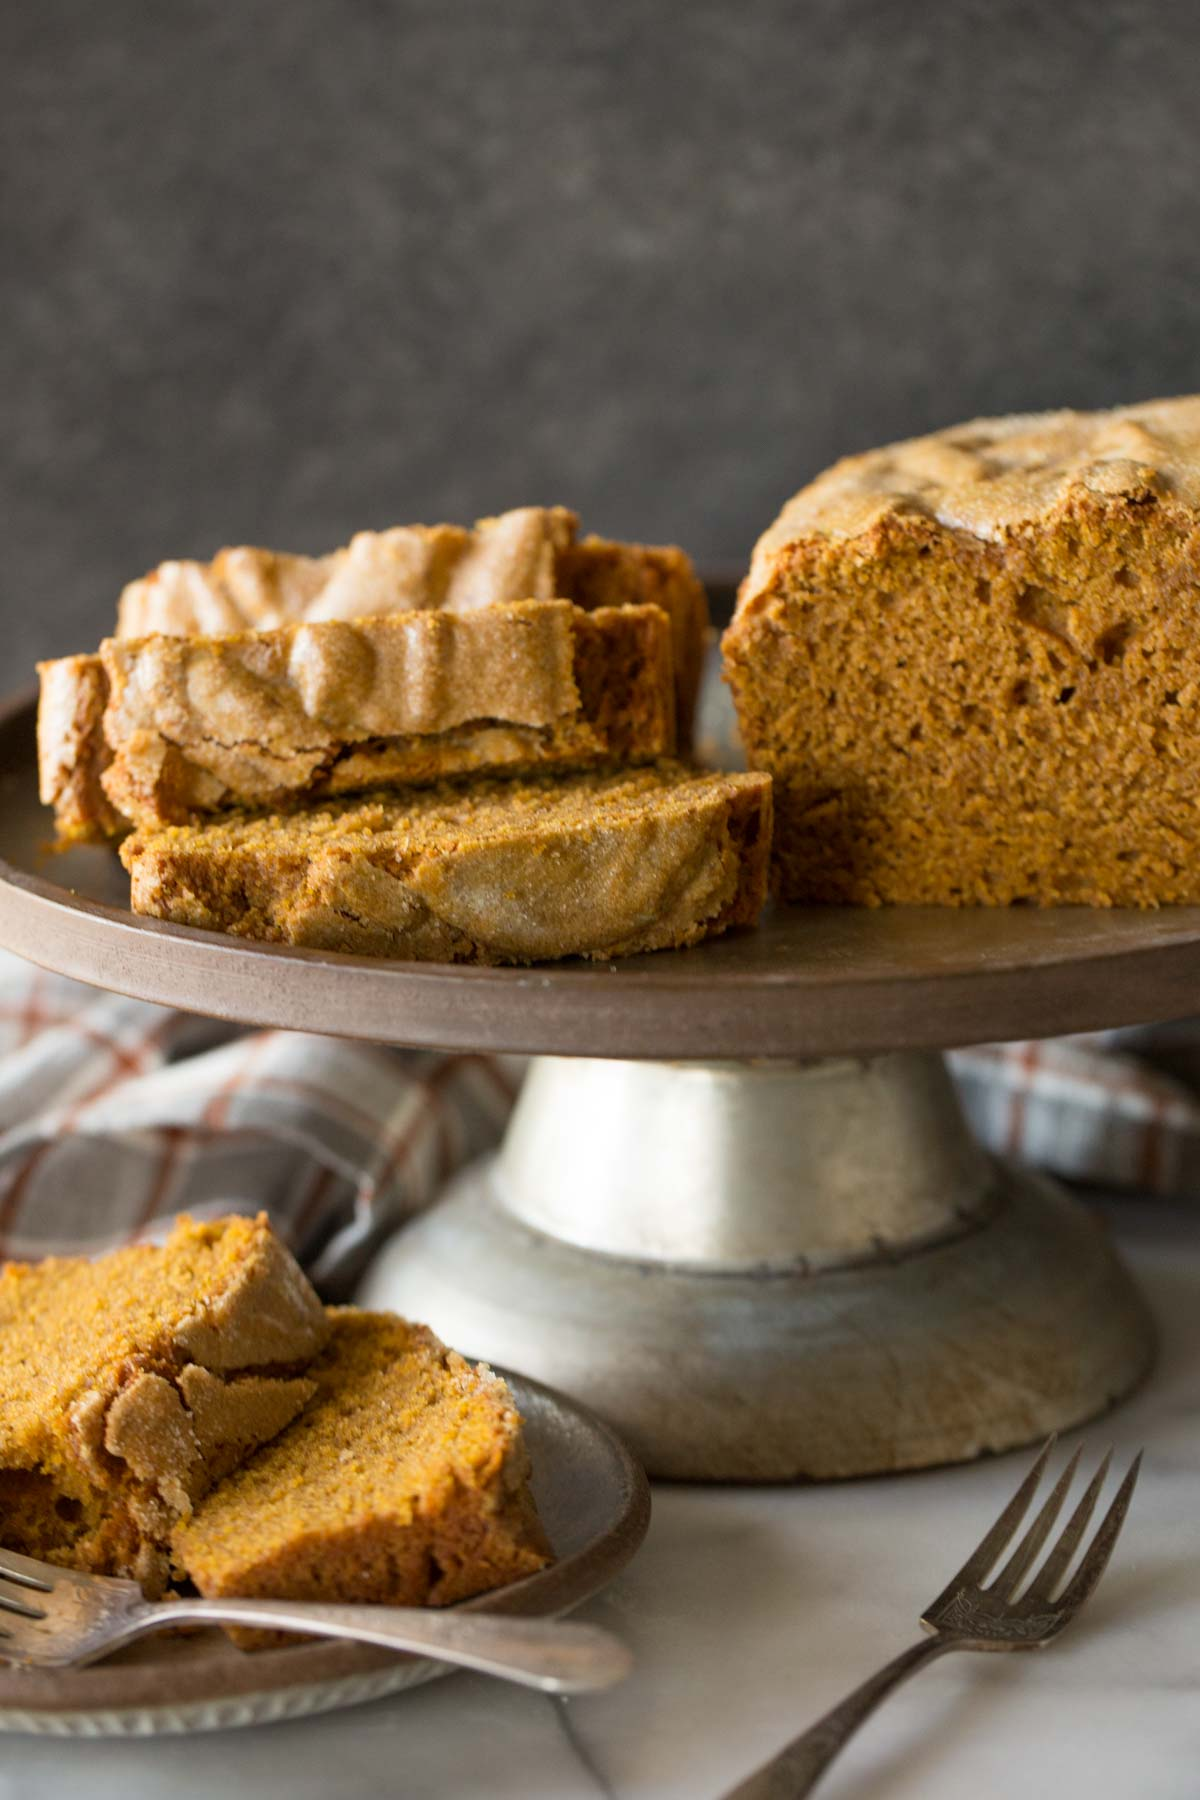 Slices of Easy Pumpkin Bread on a metal cake stand.